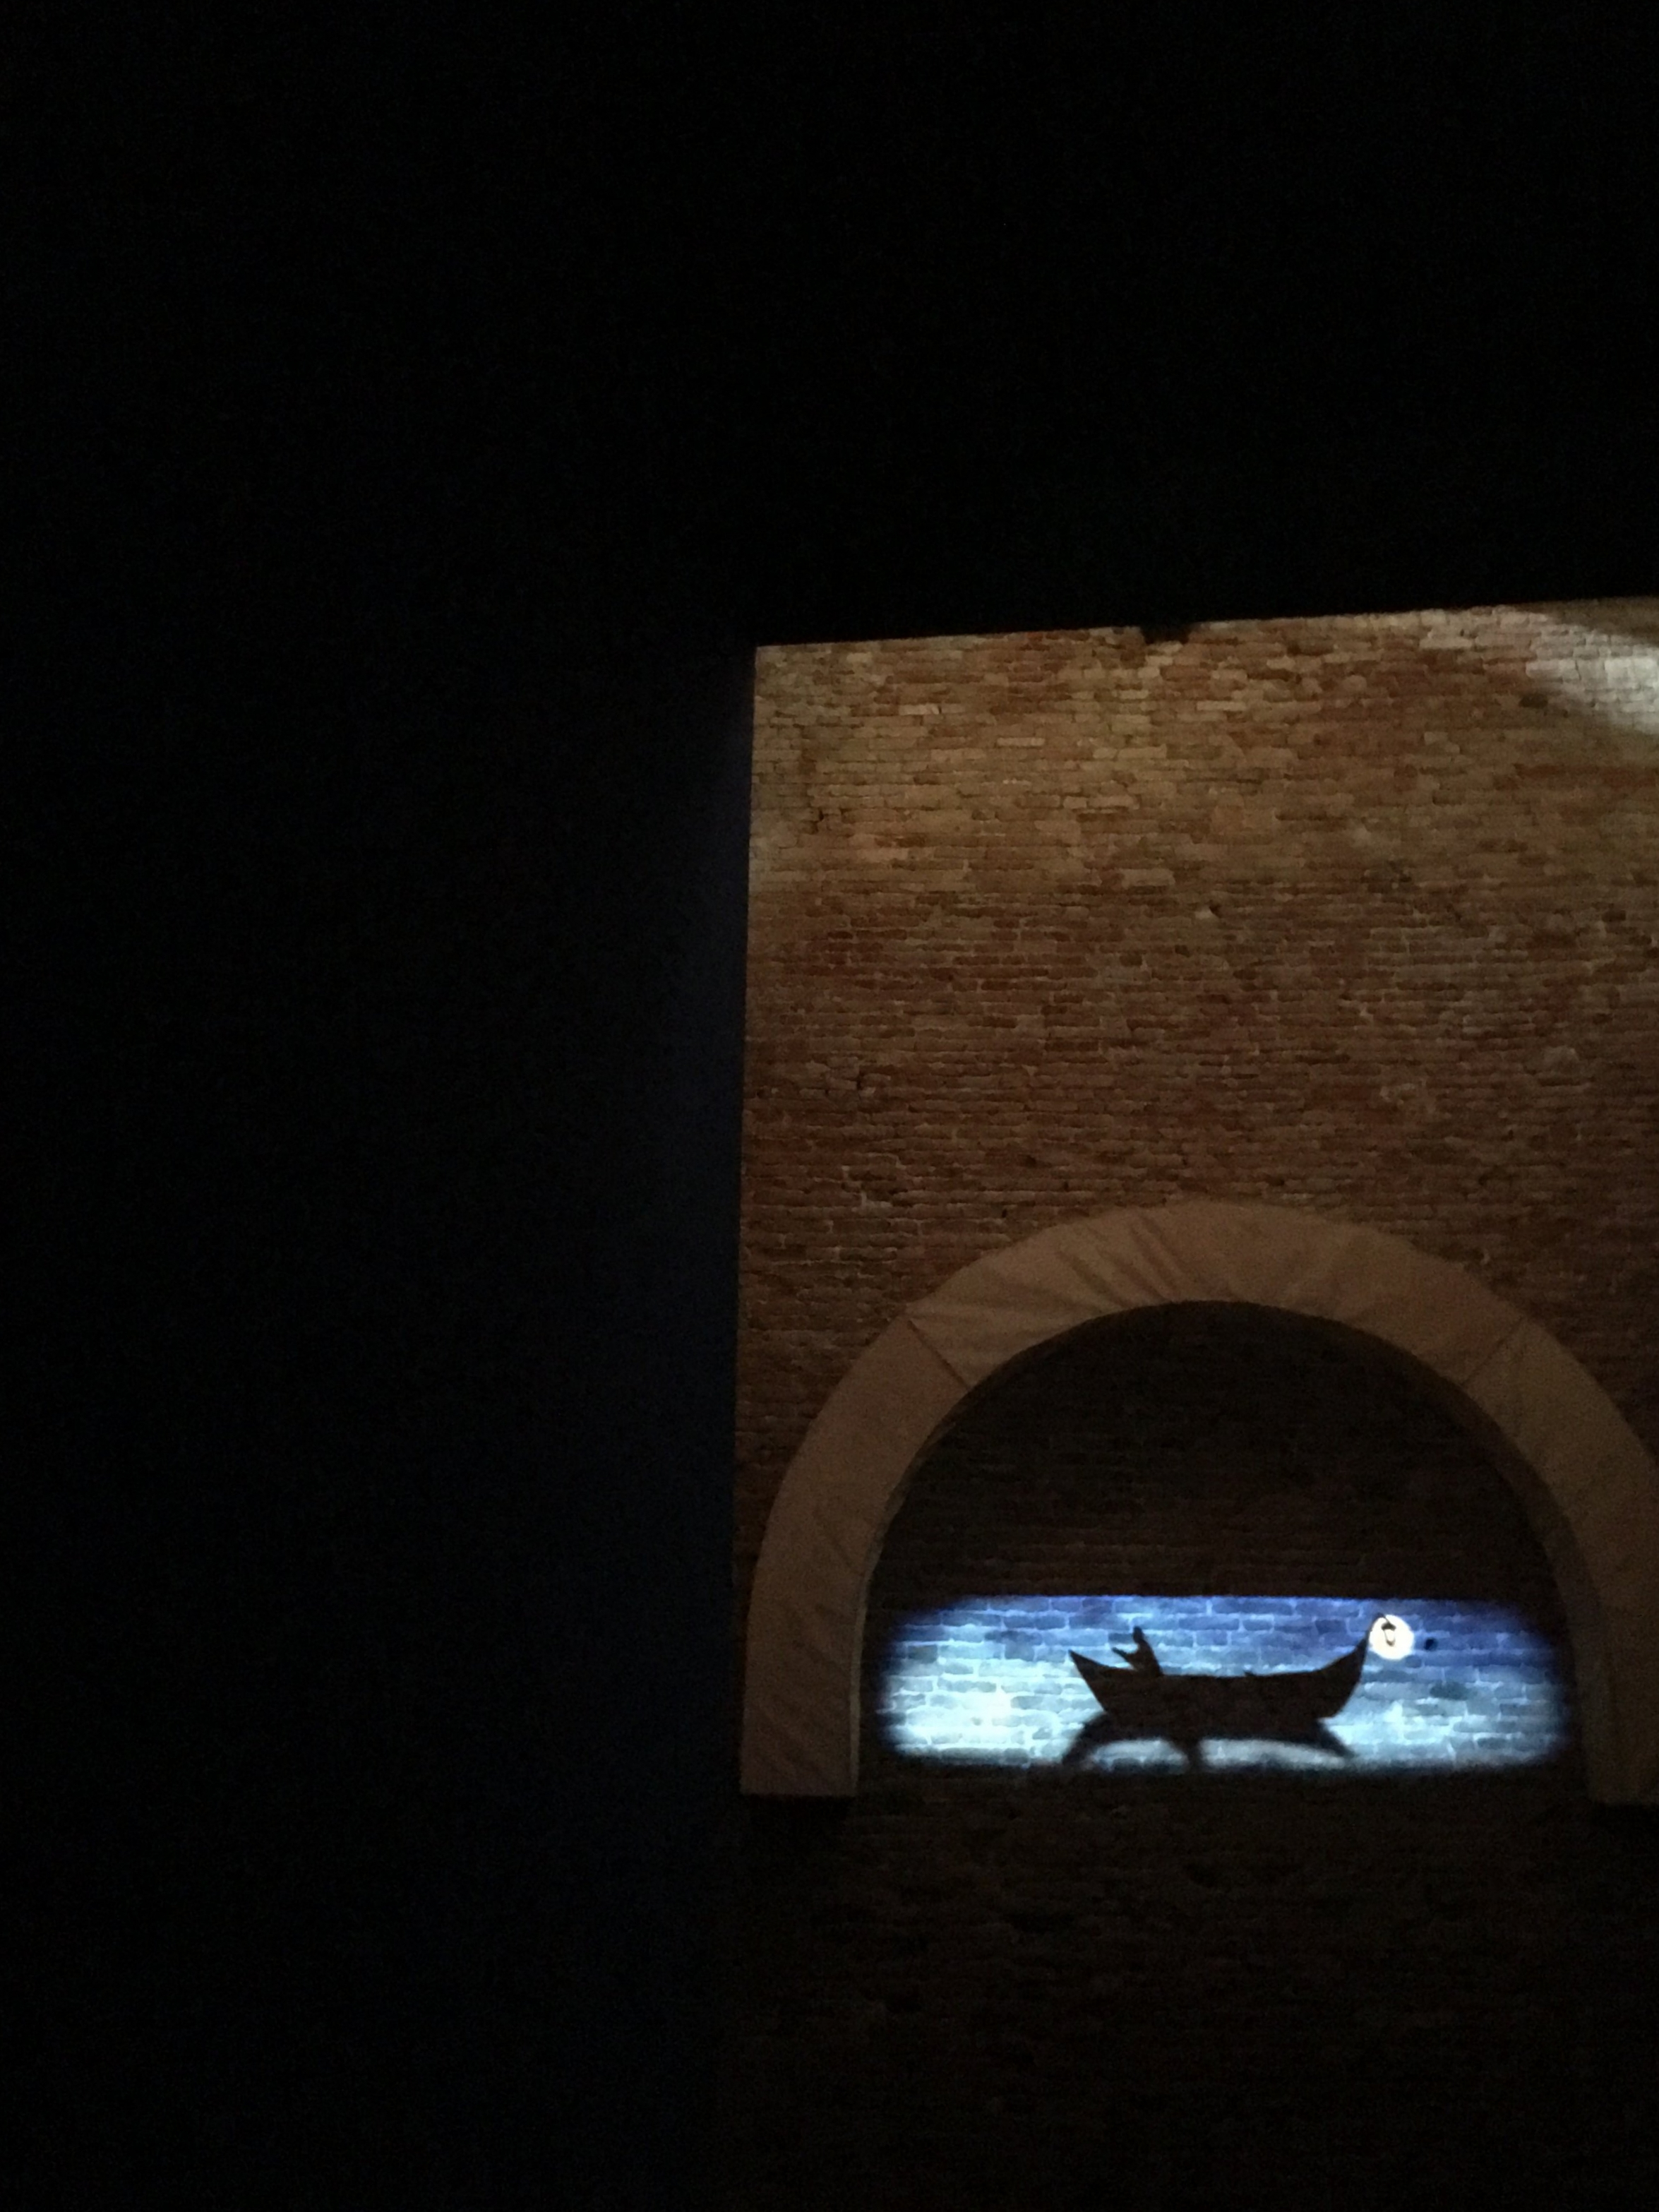 The Tale of a Night Wanderer_Projection on Resi Girardello's copper mesh and lycra structure.jpg